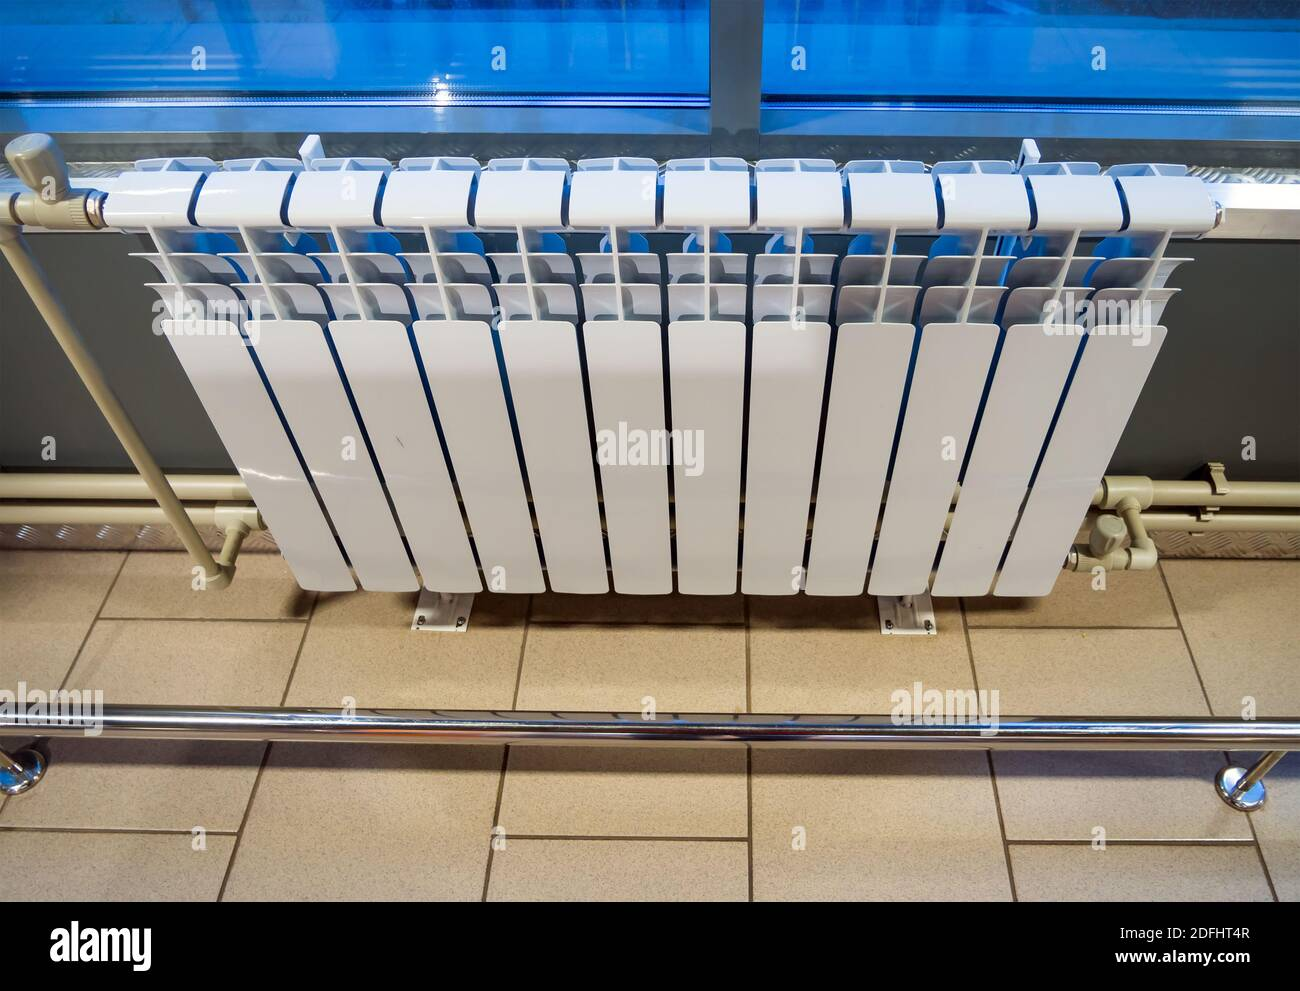 Modern Bimetallic Heating Radiator Installed Under A Window In An Industrial Building Stock Photo Alamy